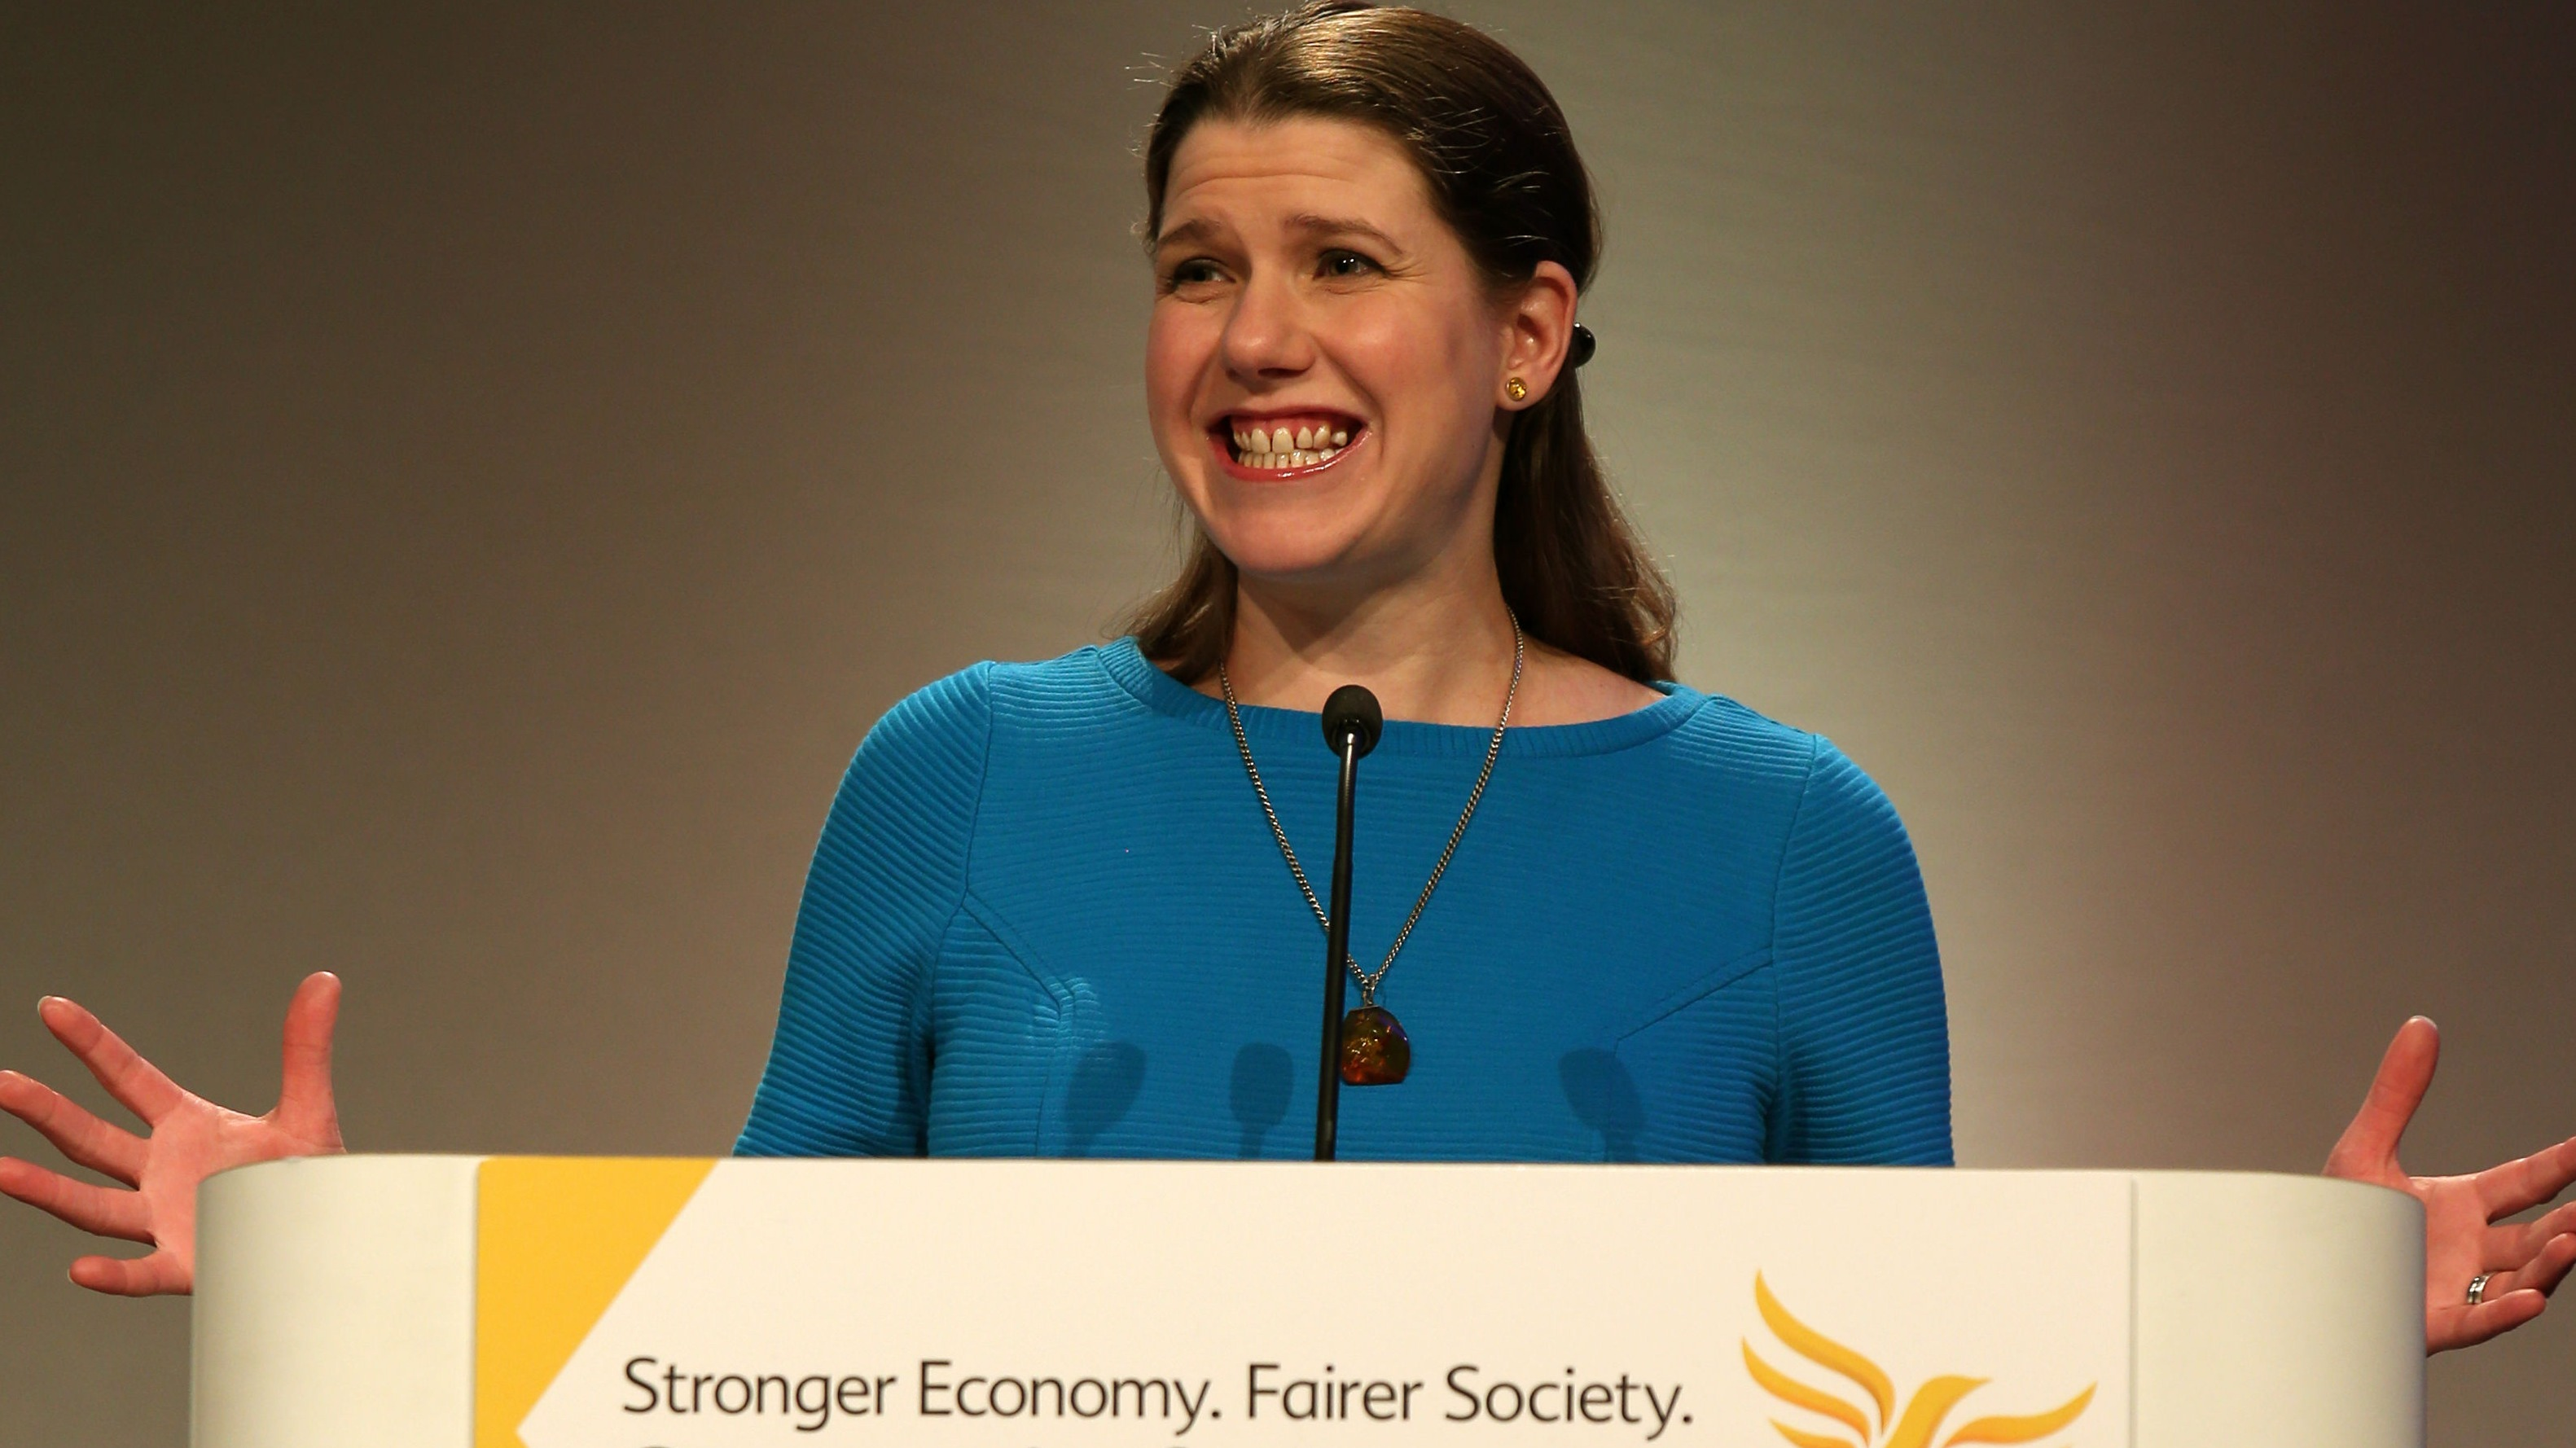 Lib Dems' Jo Swinson loses seat held for 10 years to SNP